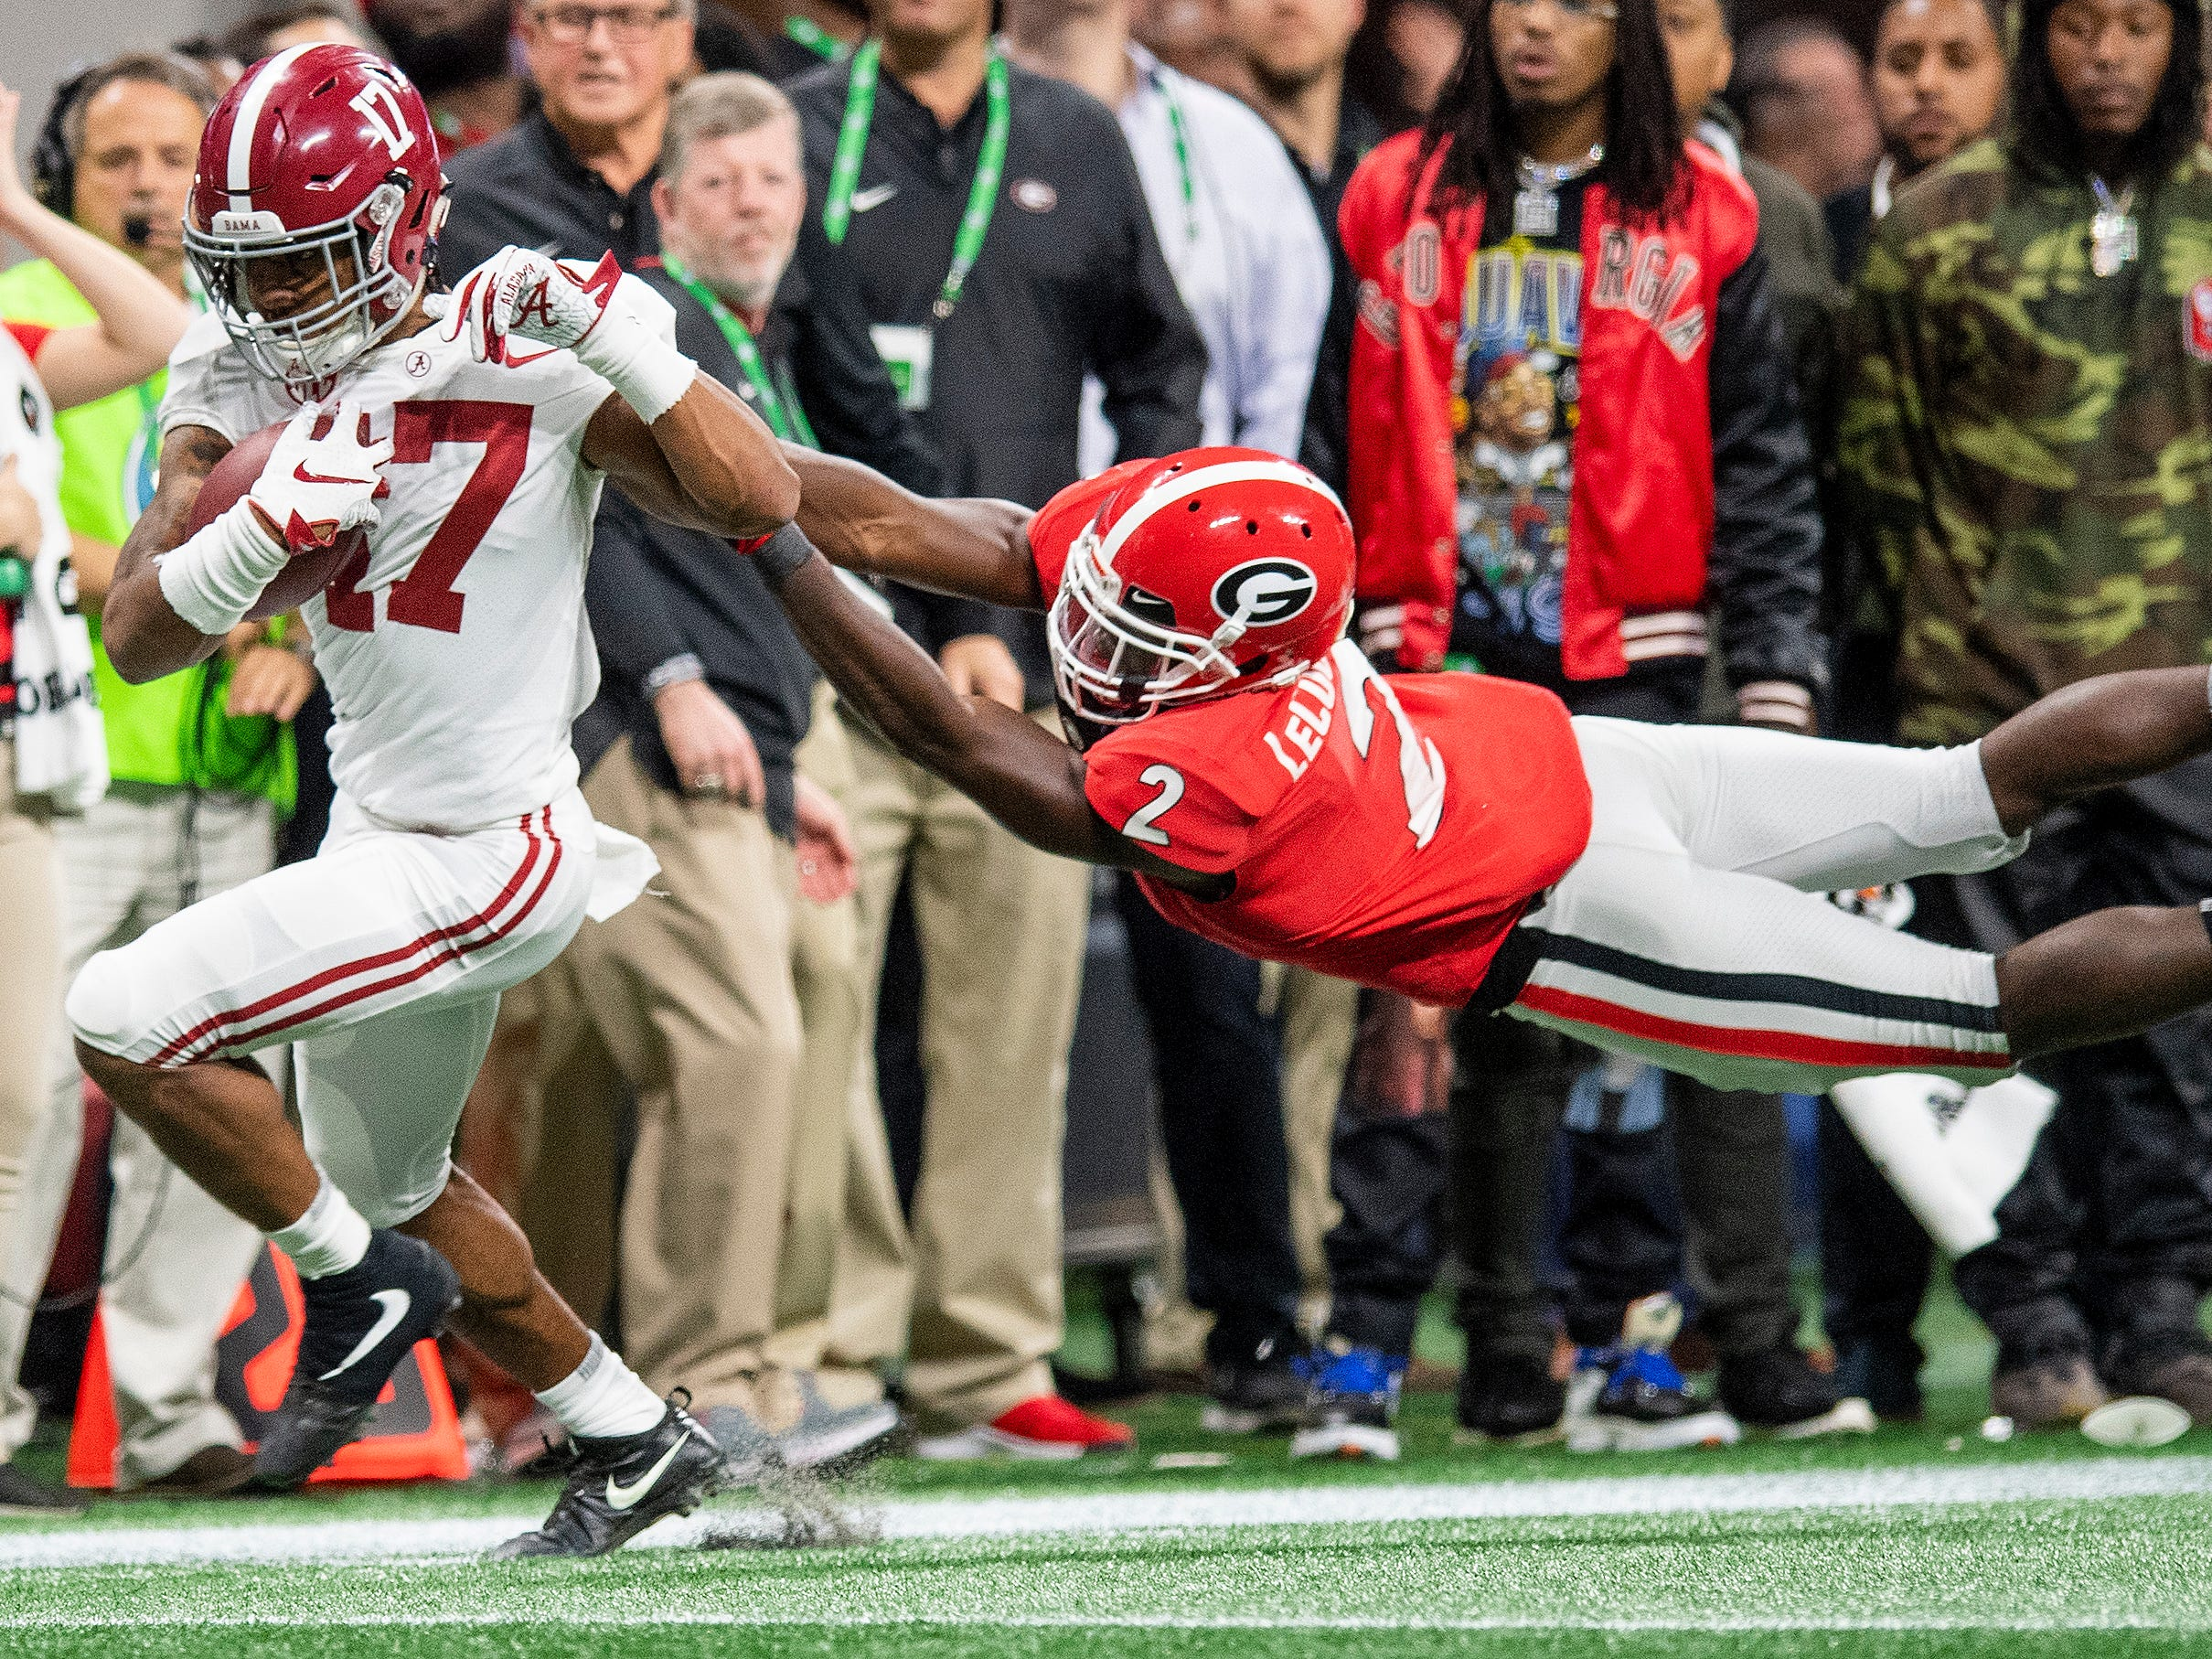 Alabama wide receiver Jaylen Waddle (17) breaks the tackle of Georgia defensive back Richard LeCounte (2) on a long touchdown play in the SEC Championship Game at Mercedes Benz Stadium in Atlanta, Ga., on Saturday December 1, 2018.